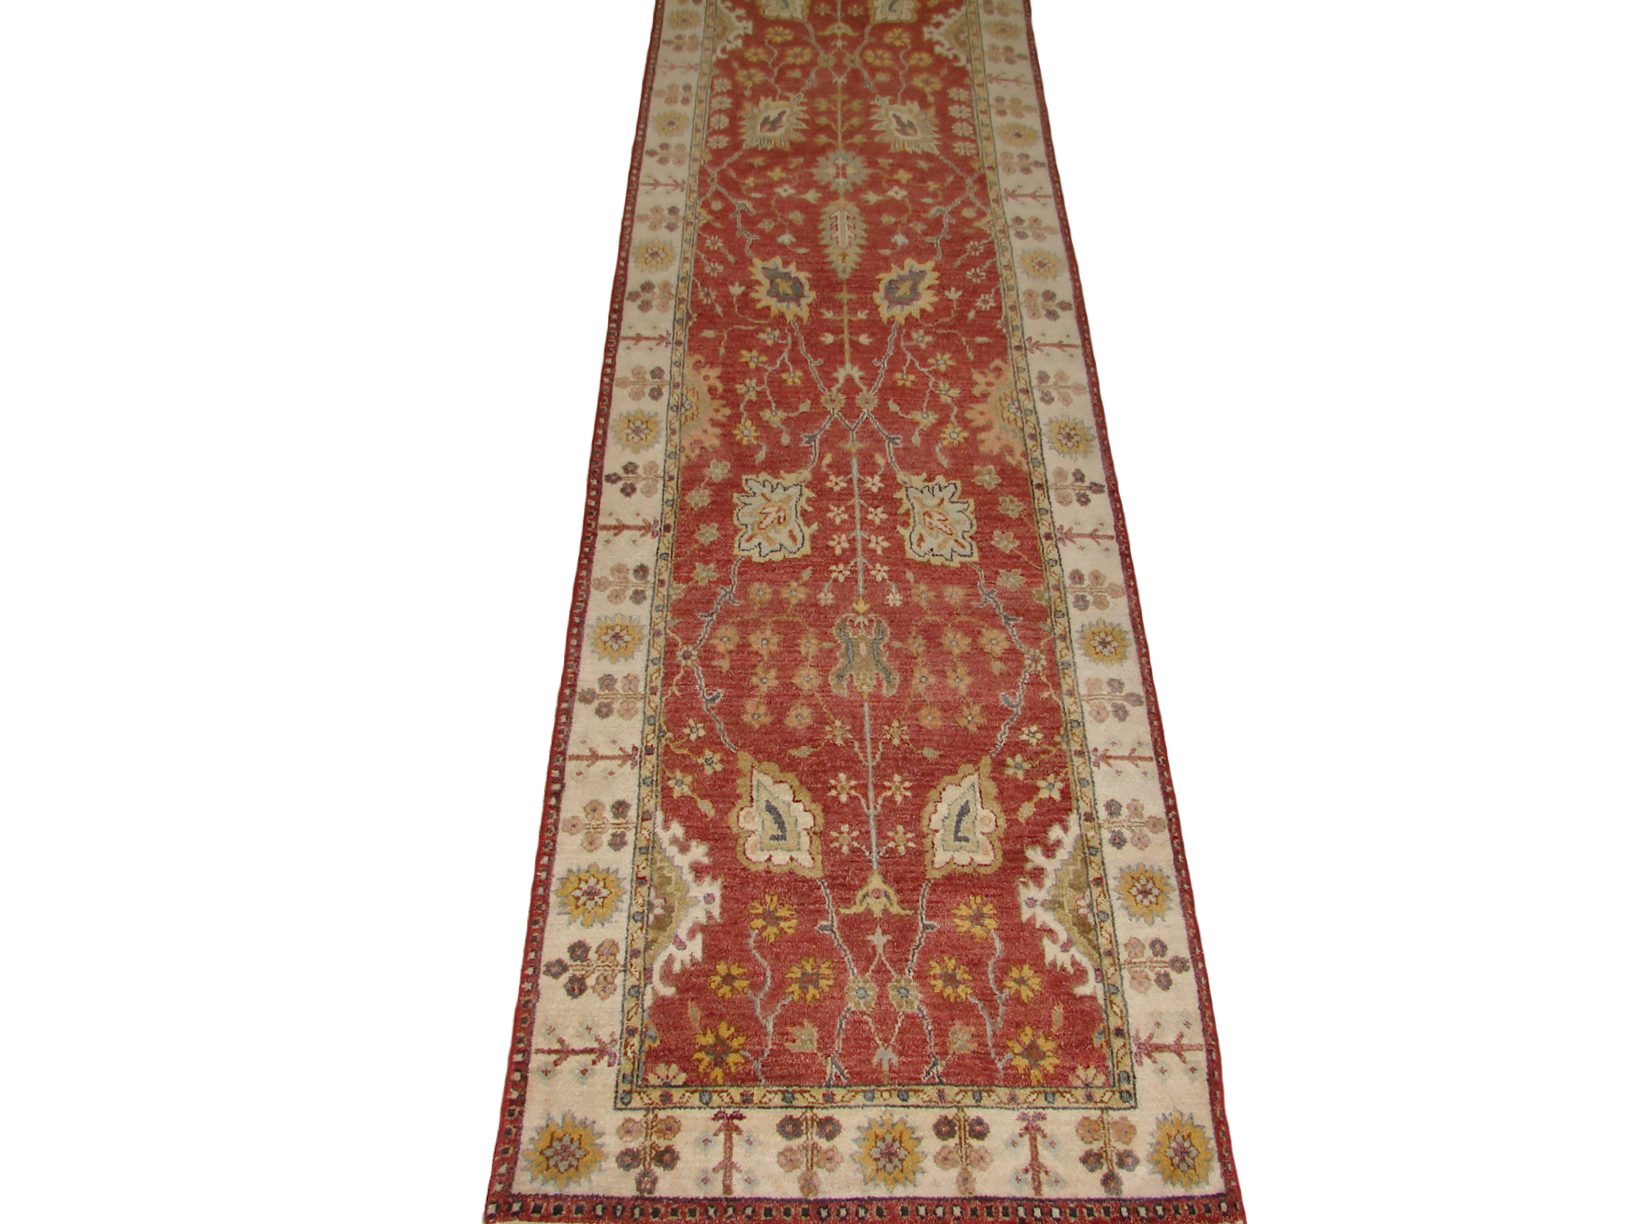 13 & Longer Runner Traditional Hand Knotted Wool Area Rug - MR20542